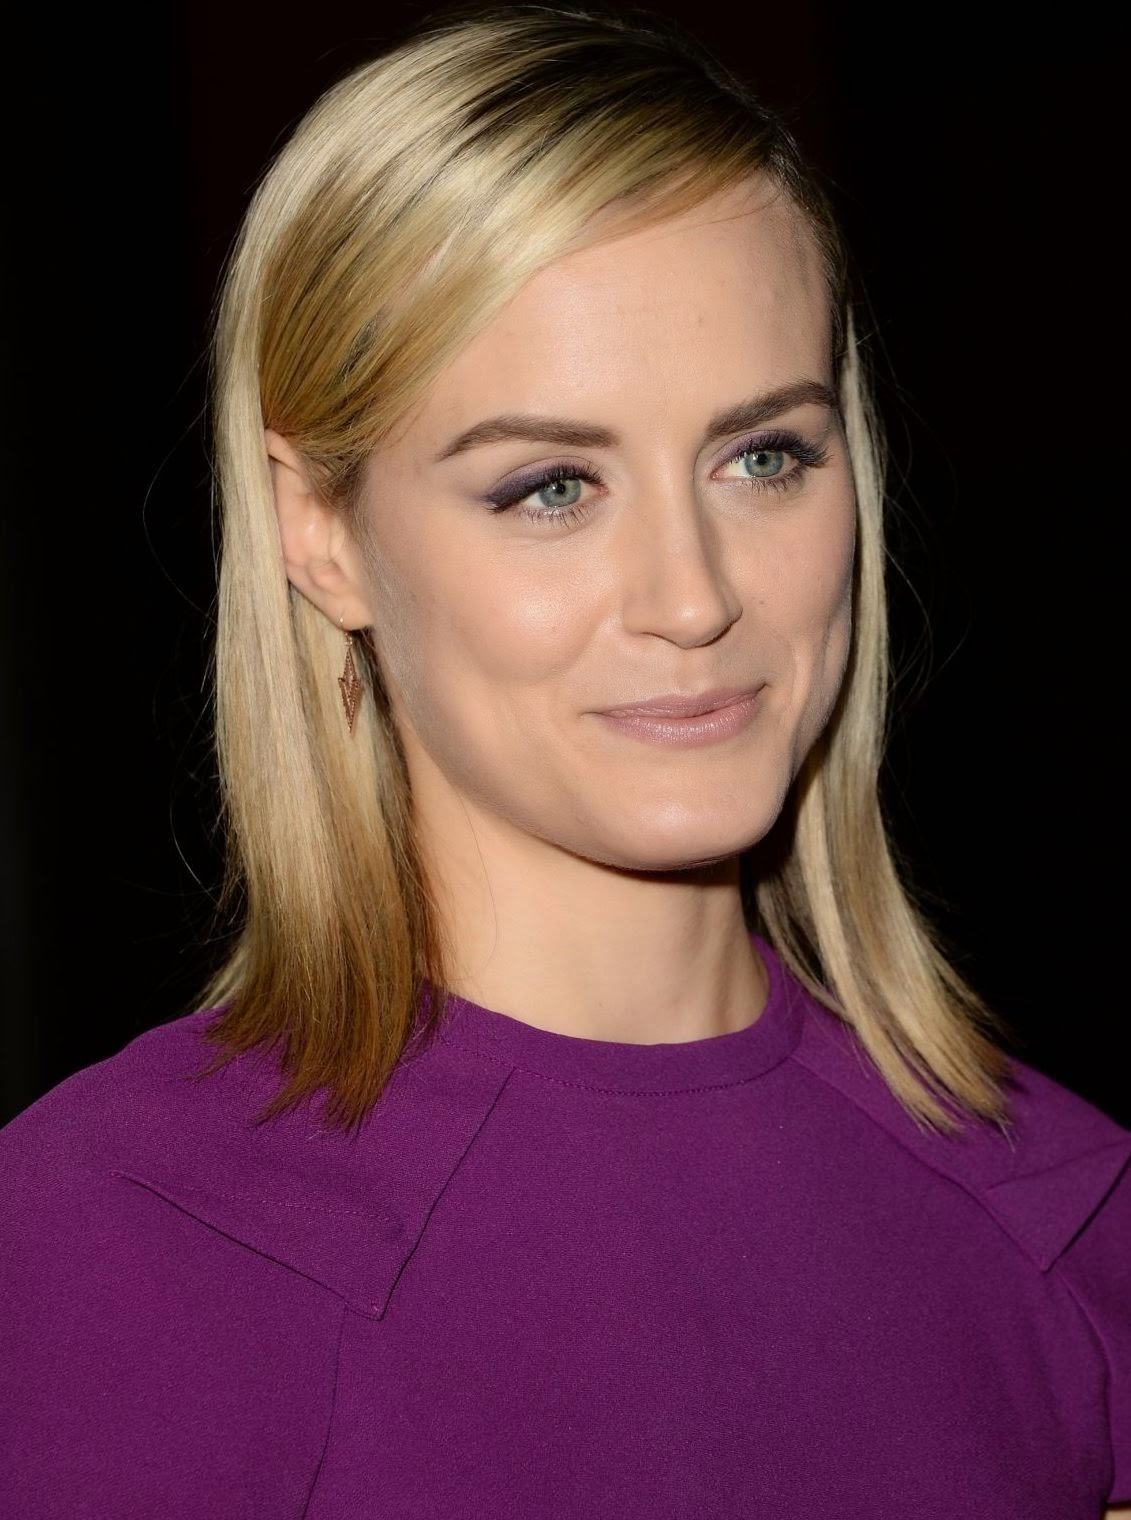 Celebrity Taylor Schilling nudes (96 foto and video), Sexy, Is a cute, Boobs, cleavage 2020